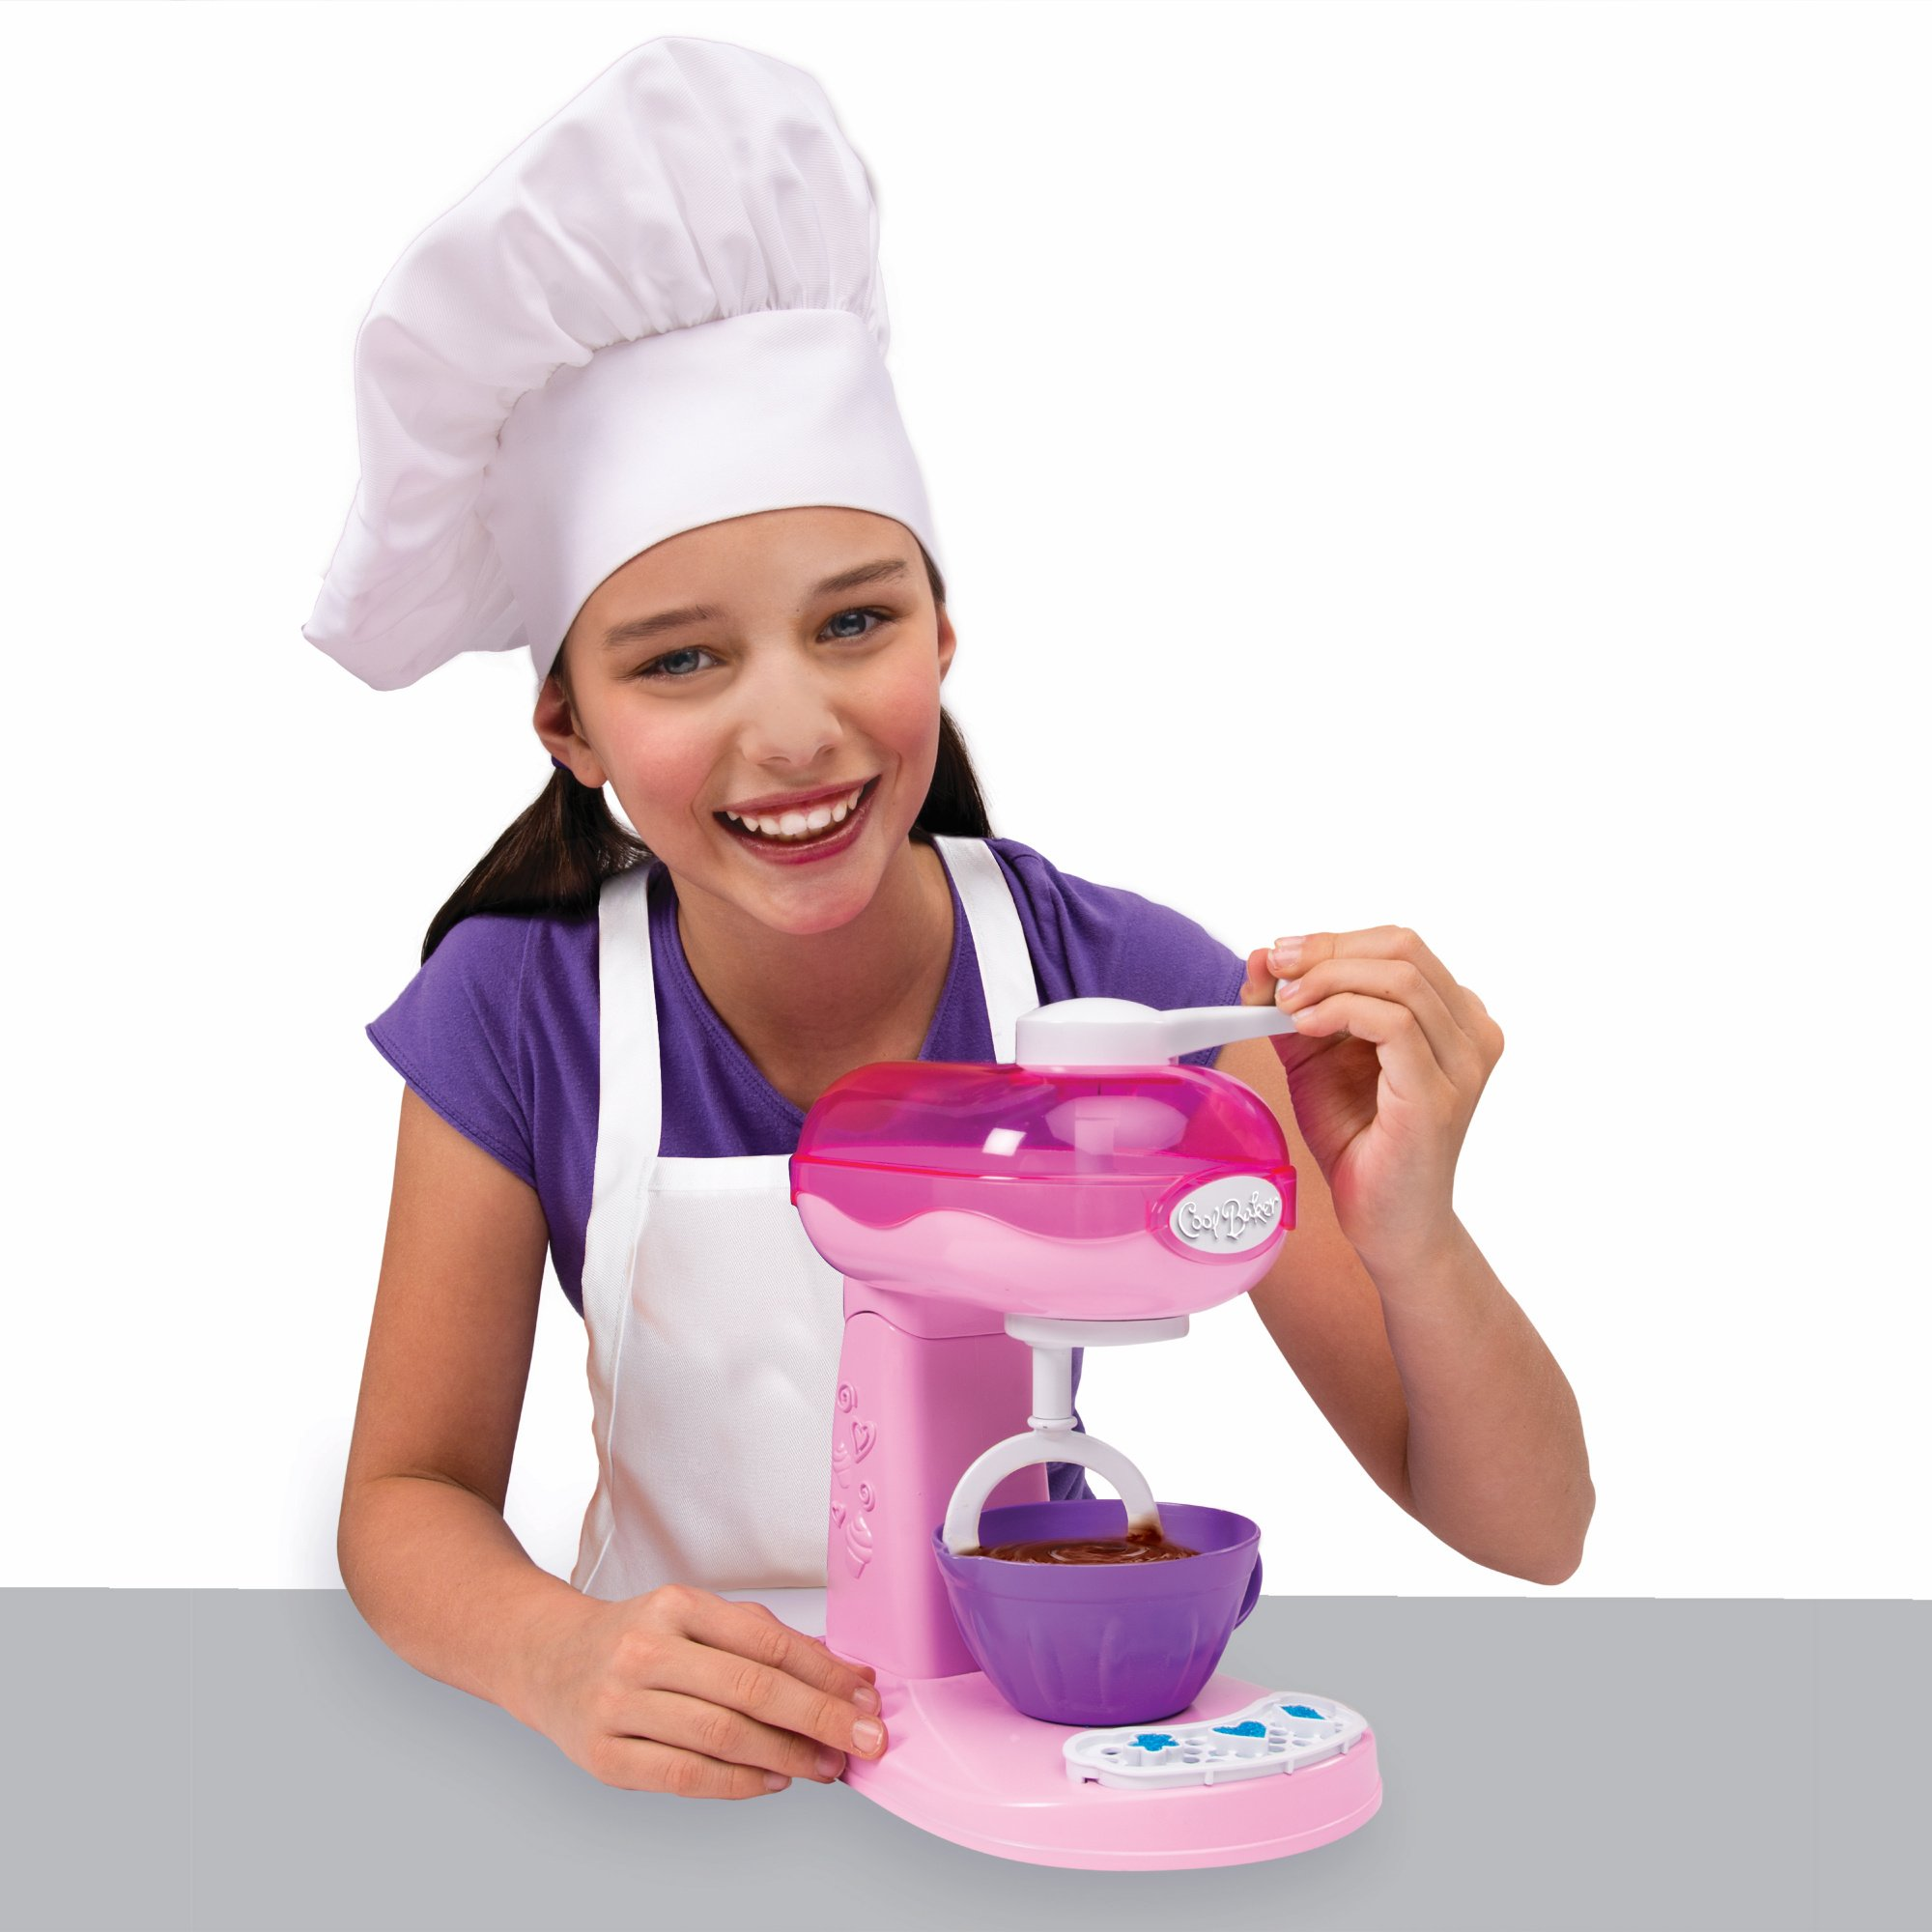 Cool Baker Magic Mixer Maker - Pink by Cool Baker (Image #5)